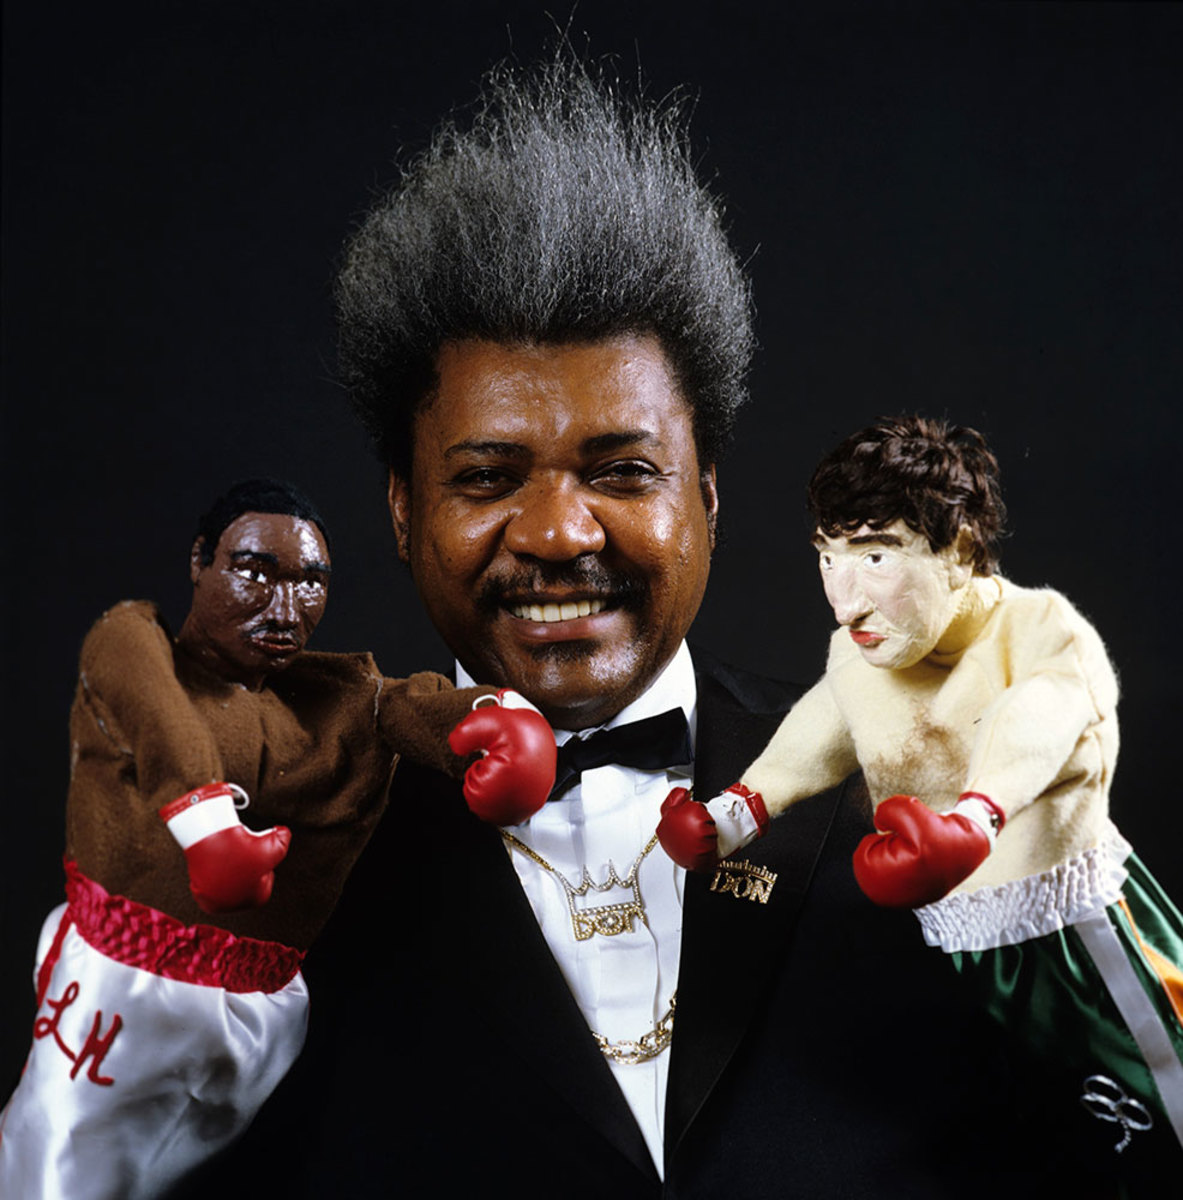 1982-0501-Don-King-Larry-Holmes-Gerry-Cooney-puppets-NLC_01024.jpg